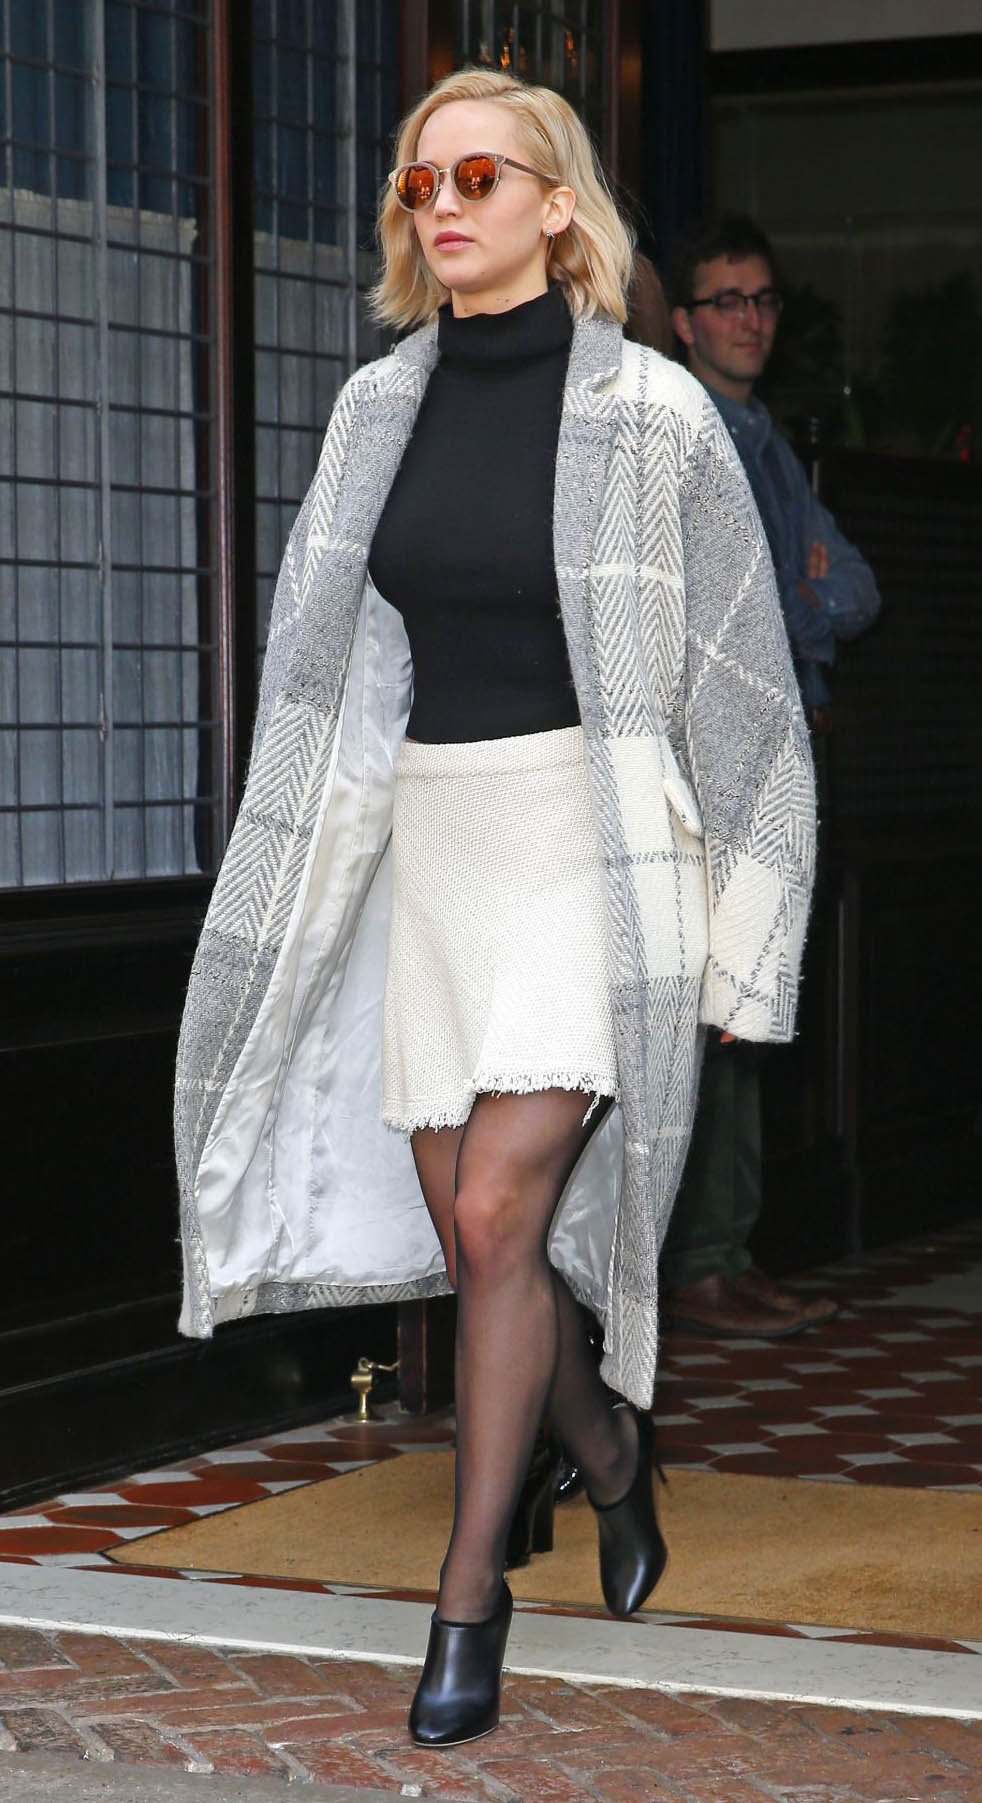 white-mini-skirt-black-sweater-turtleneck-black-tights-black-shoe-booties-grayl-jacket-coatigan-plaid-sun-jenniferlawrence-style-fall-winter-blonde-work.jpg